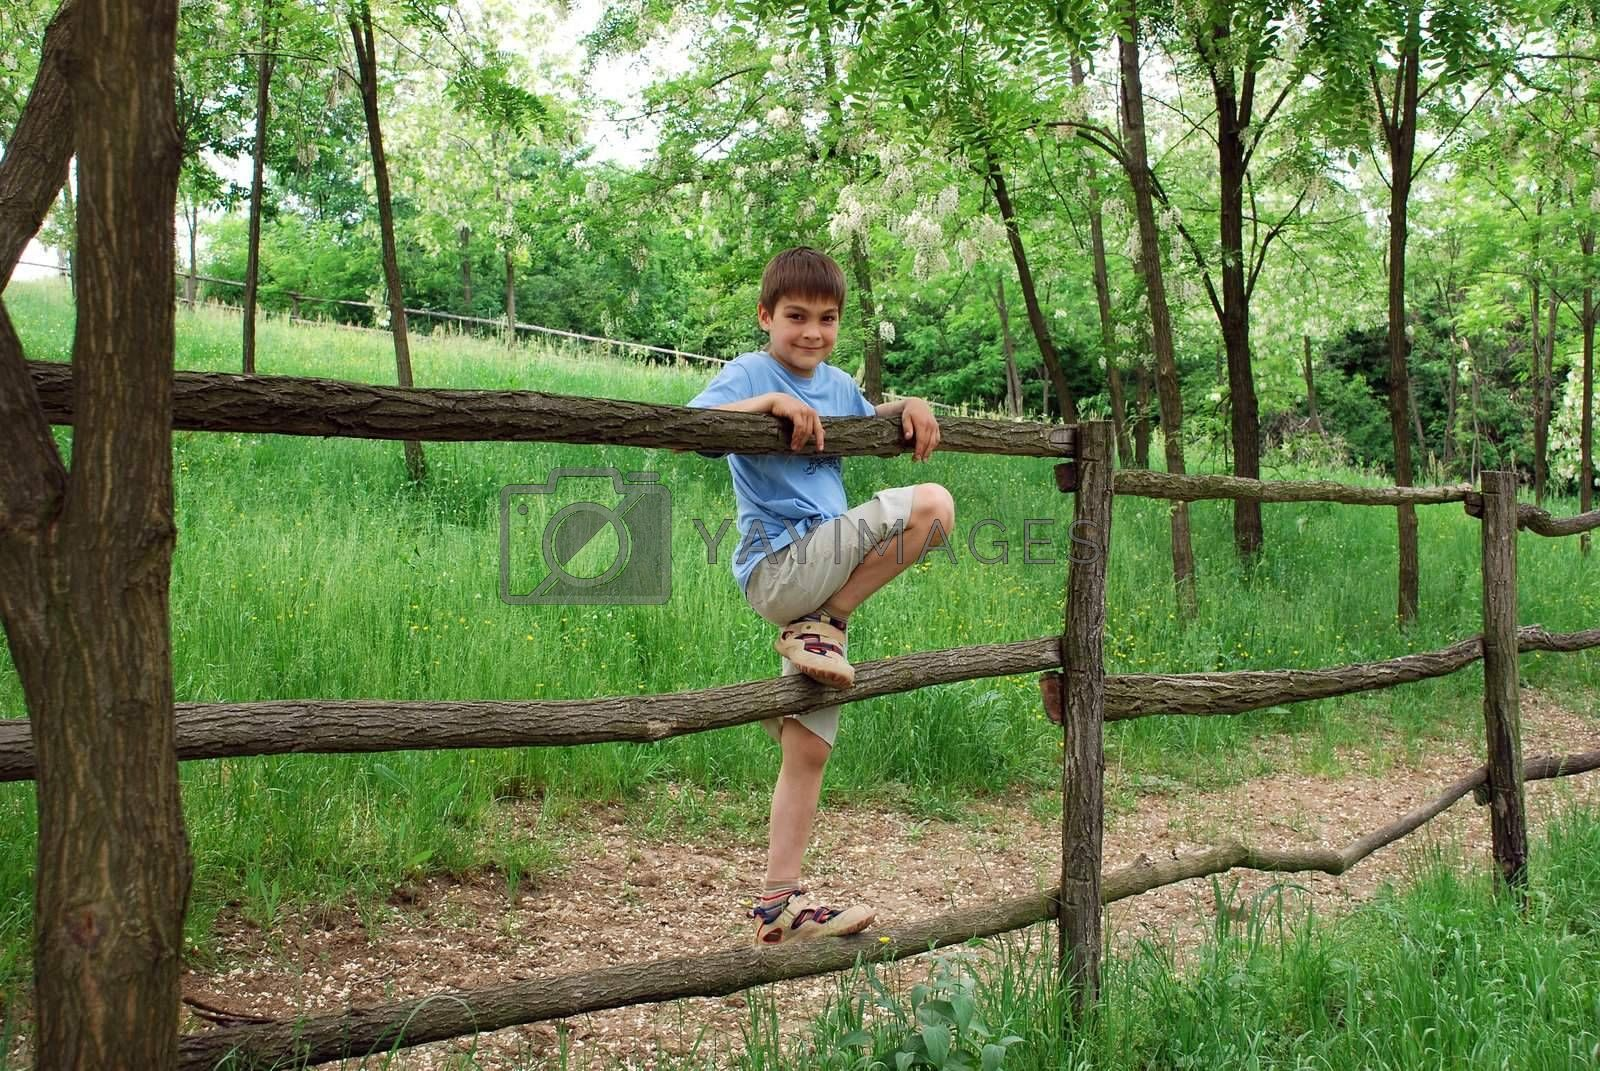 young smiling boy on fence outdoor over green natural countryside background